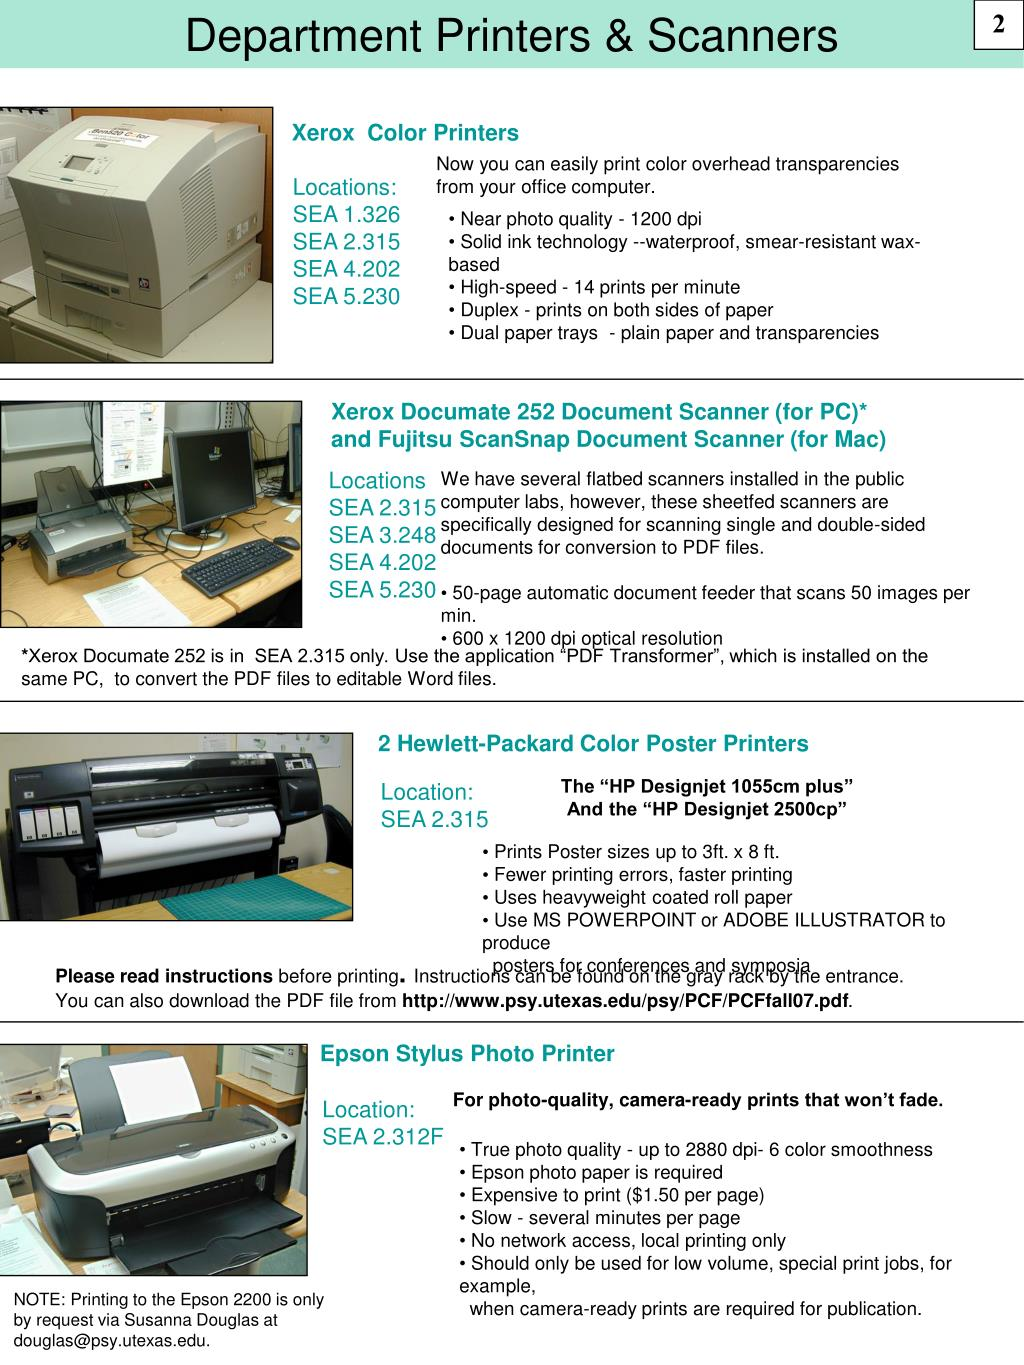 Department Printers & Scanners